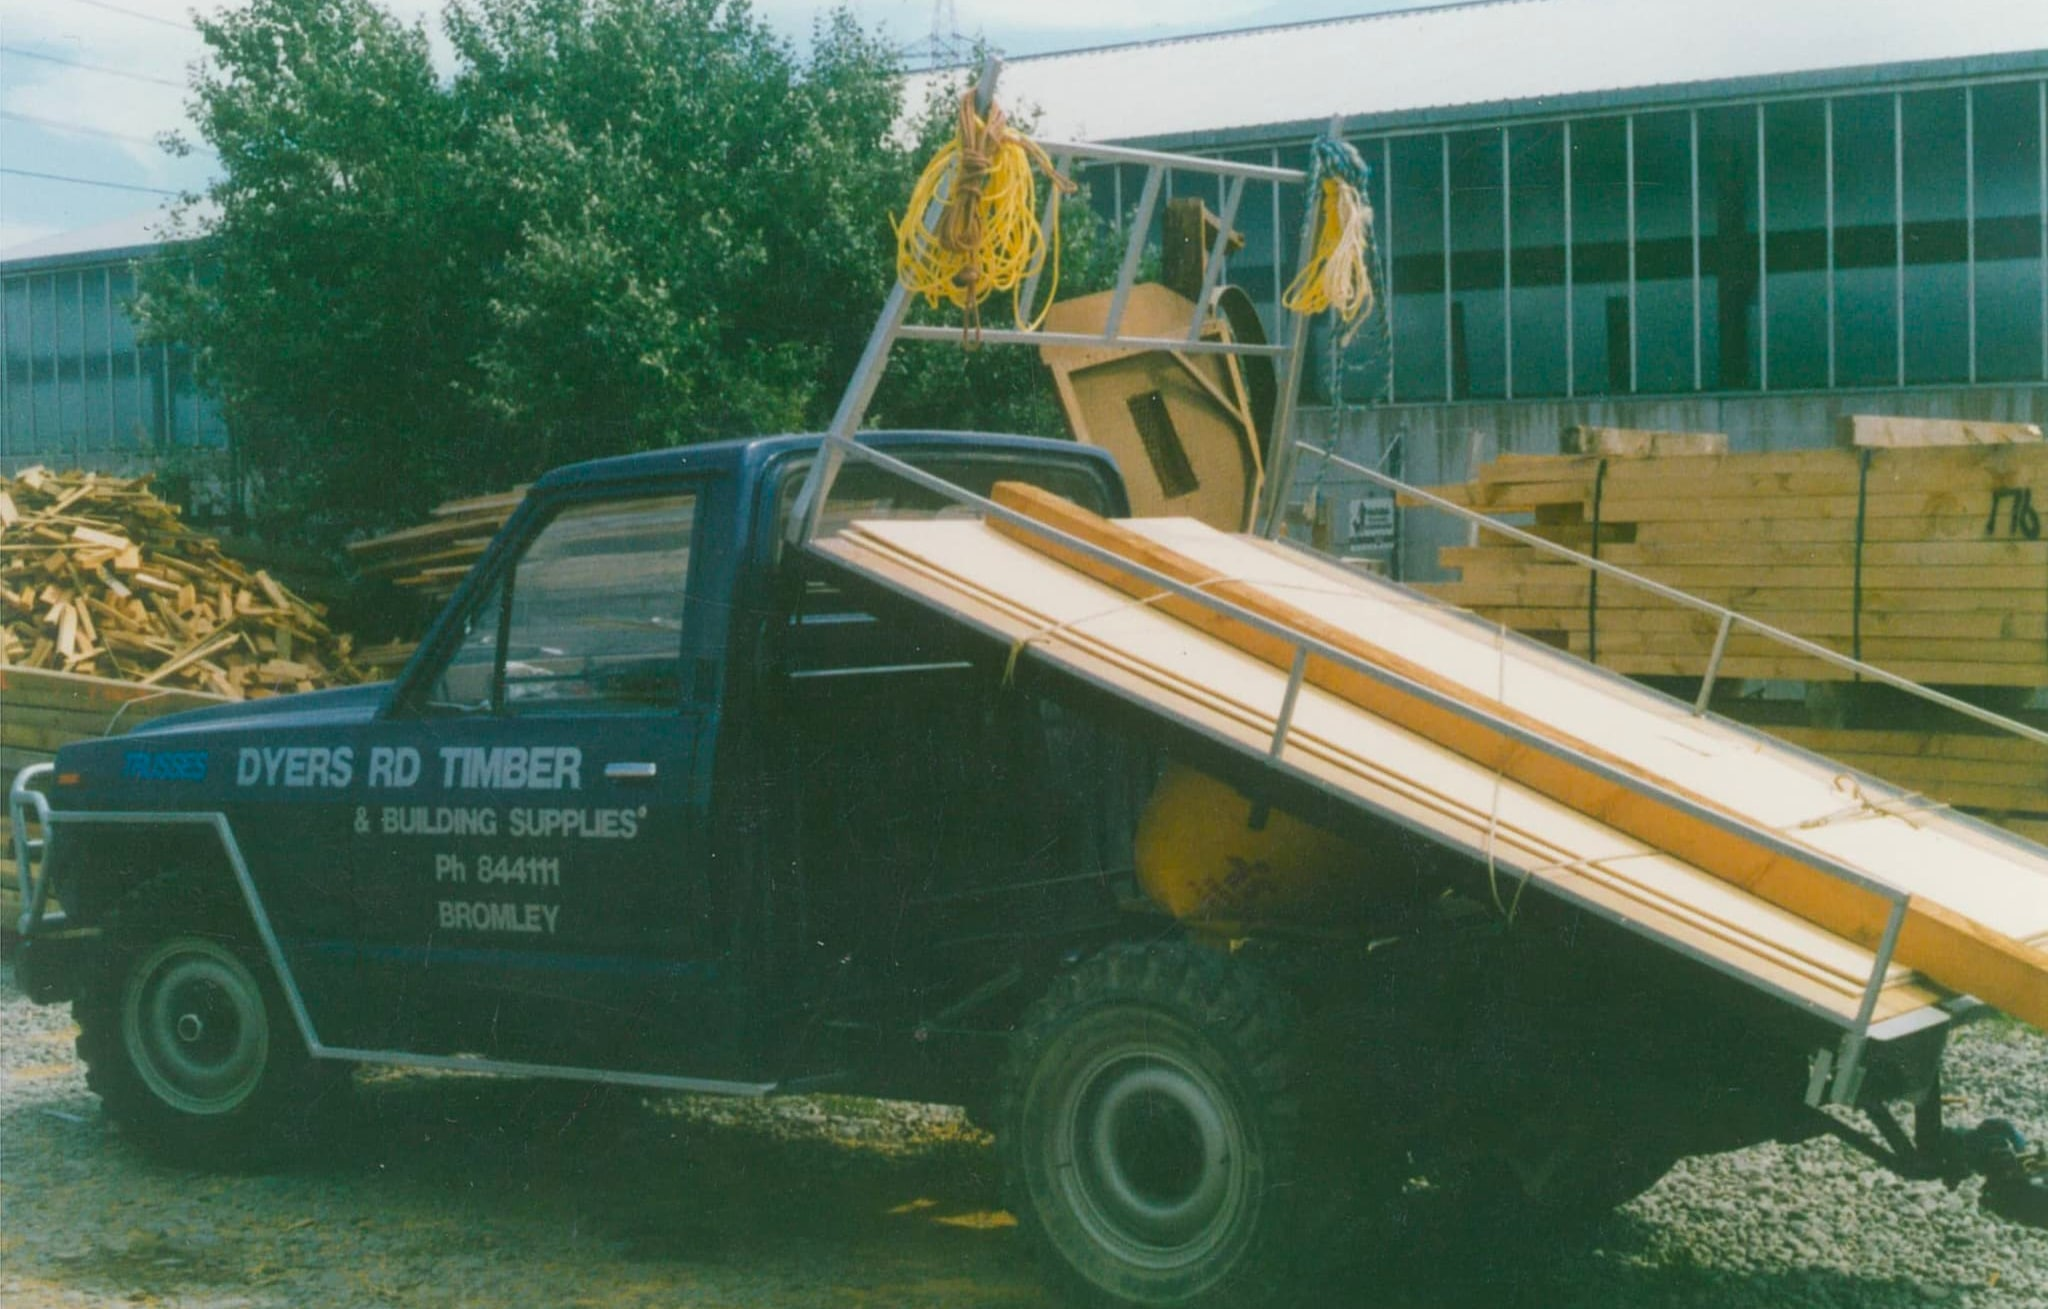 Dyers Road ITM have a long history of serving building supplies to Christchurch & Canterbury